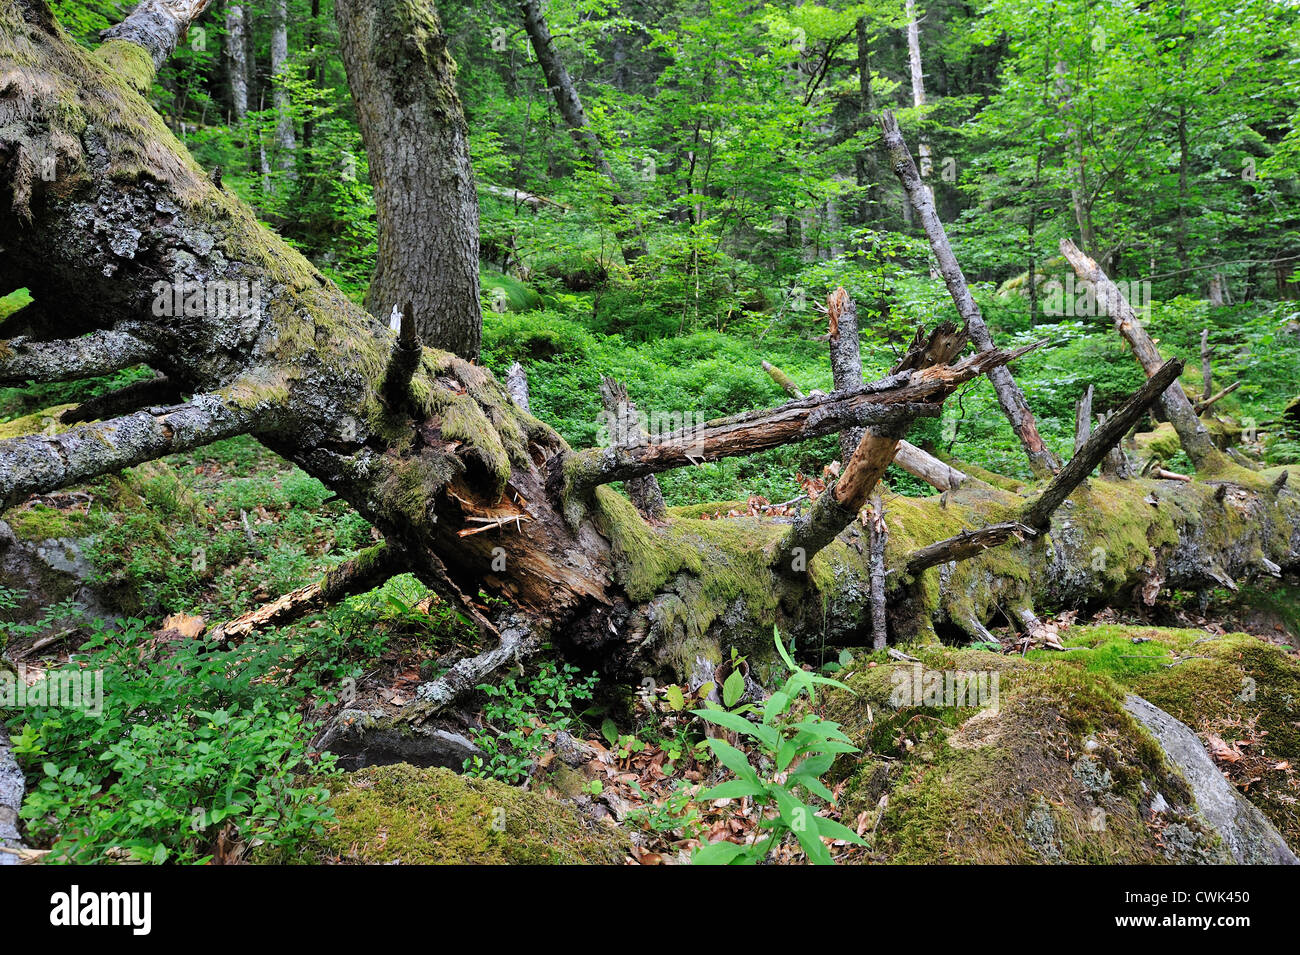 Fallen and broken tree trunk covered in moss, left to rot on forest floor as dead wood habitat for invertebrates, - Stock Image